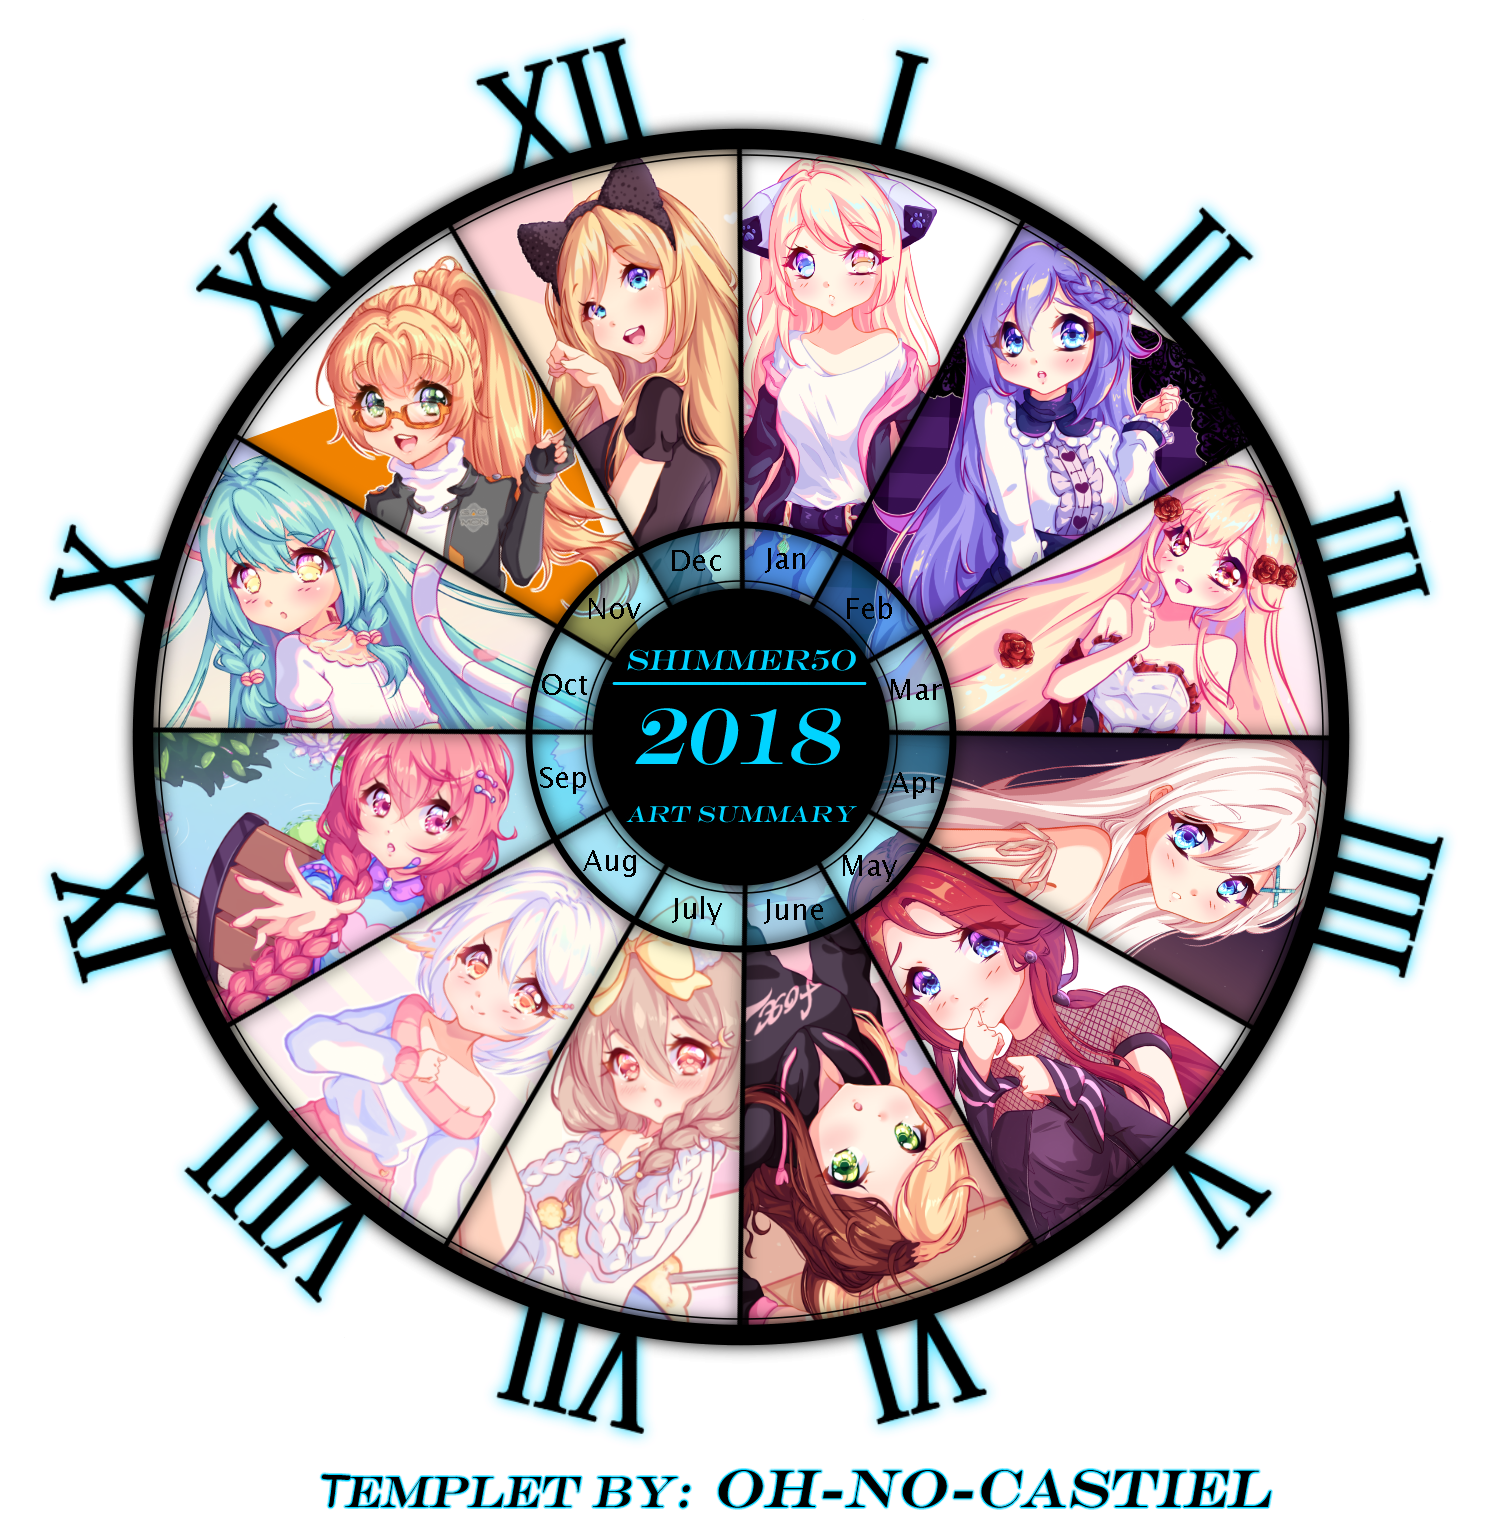 Art summery 2018 by Shimmer5O